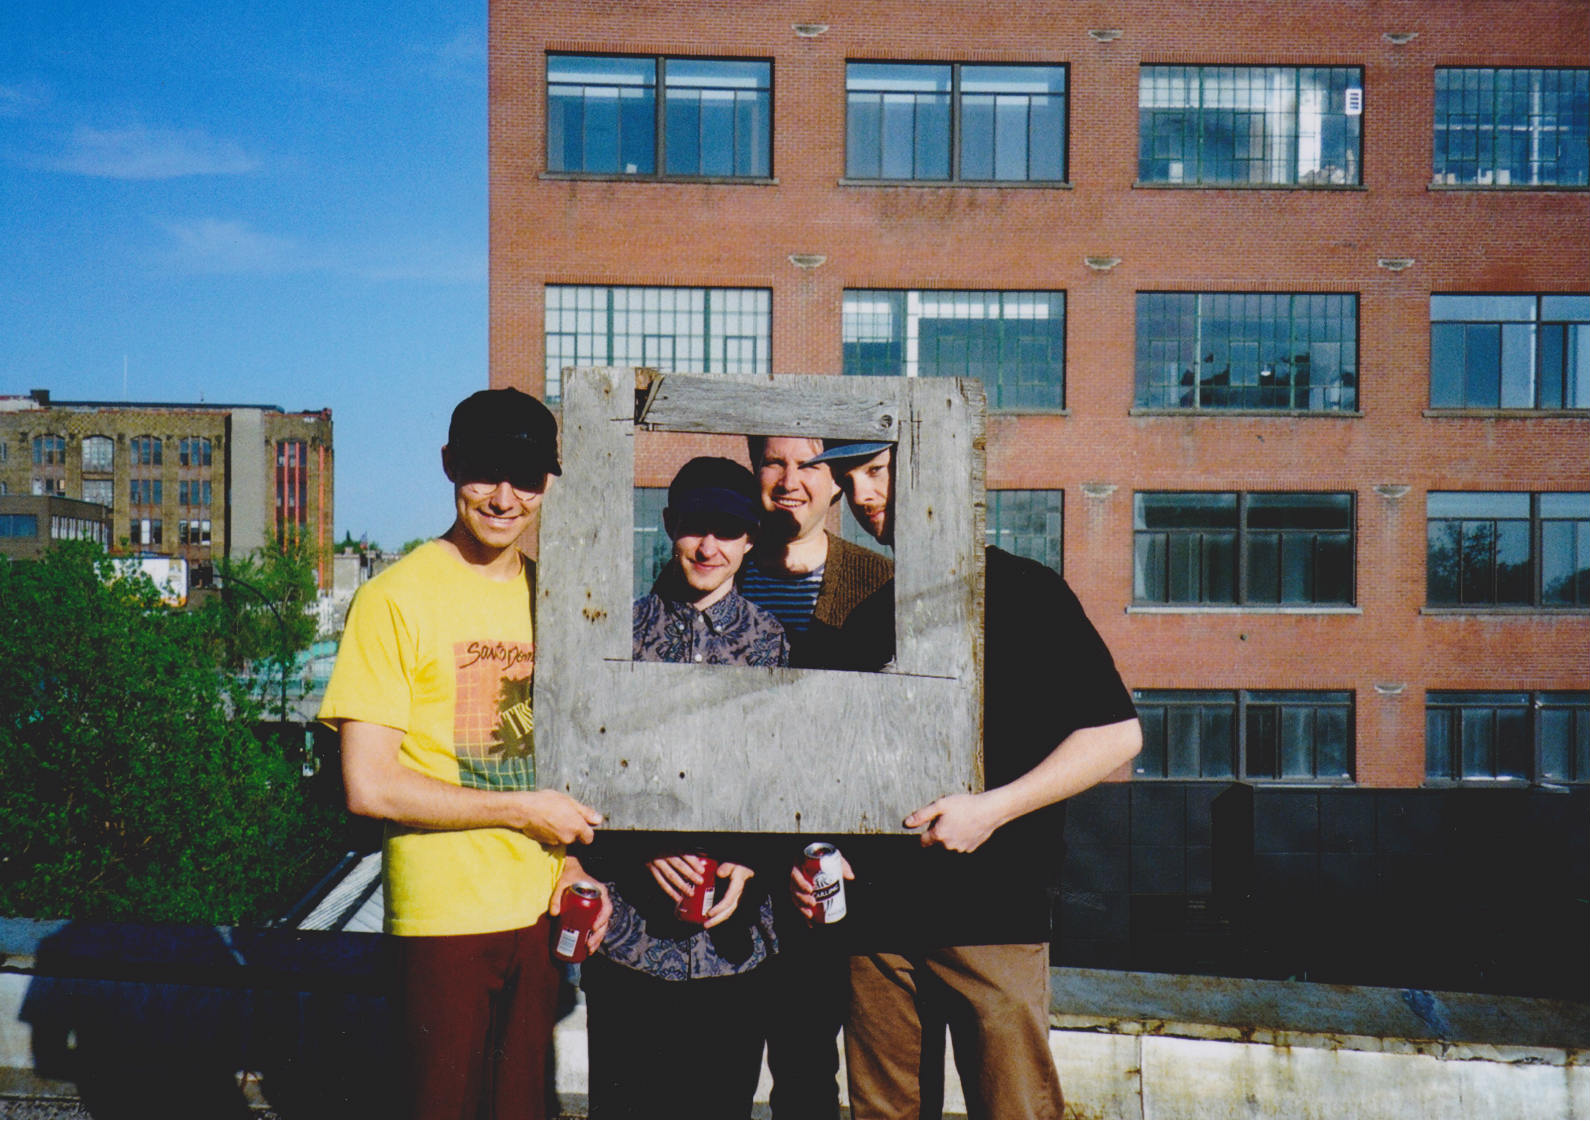 Bird-On-The-Wire-Homeshake-Mass-Gothic-The-Victoria-Events-London.jpg